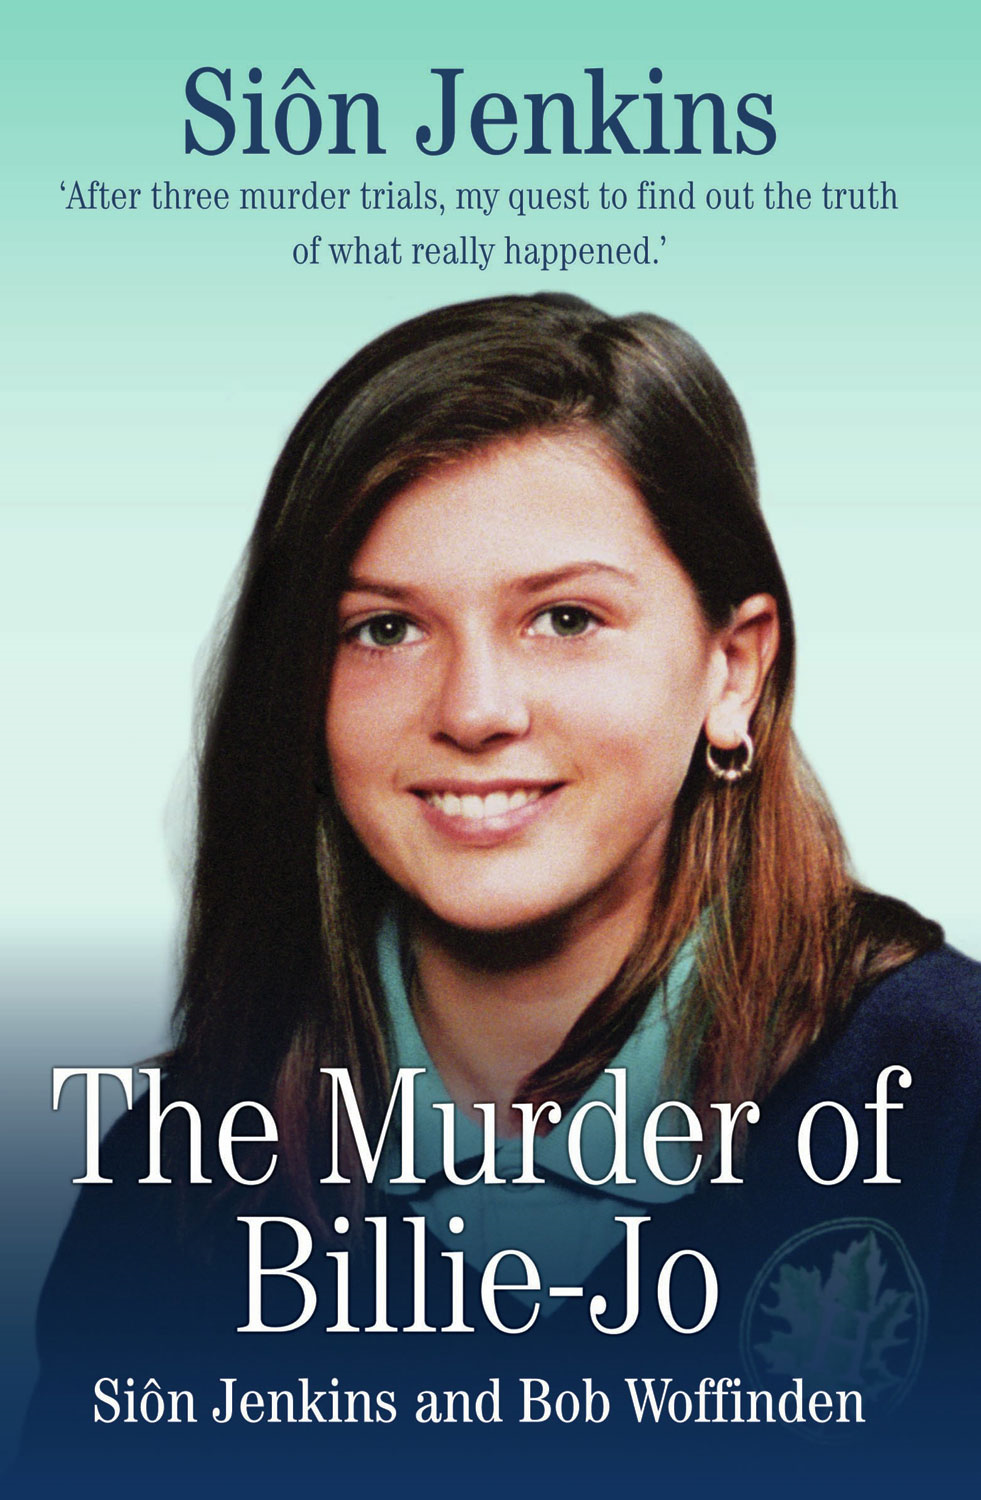 The Murder of Billie-Jo